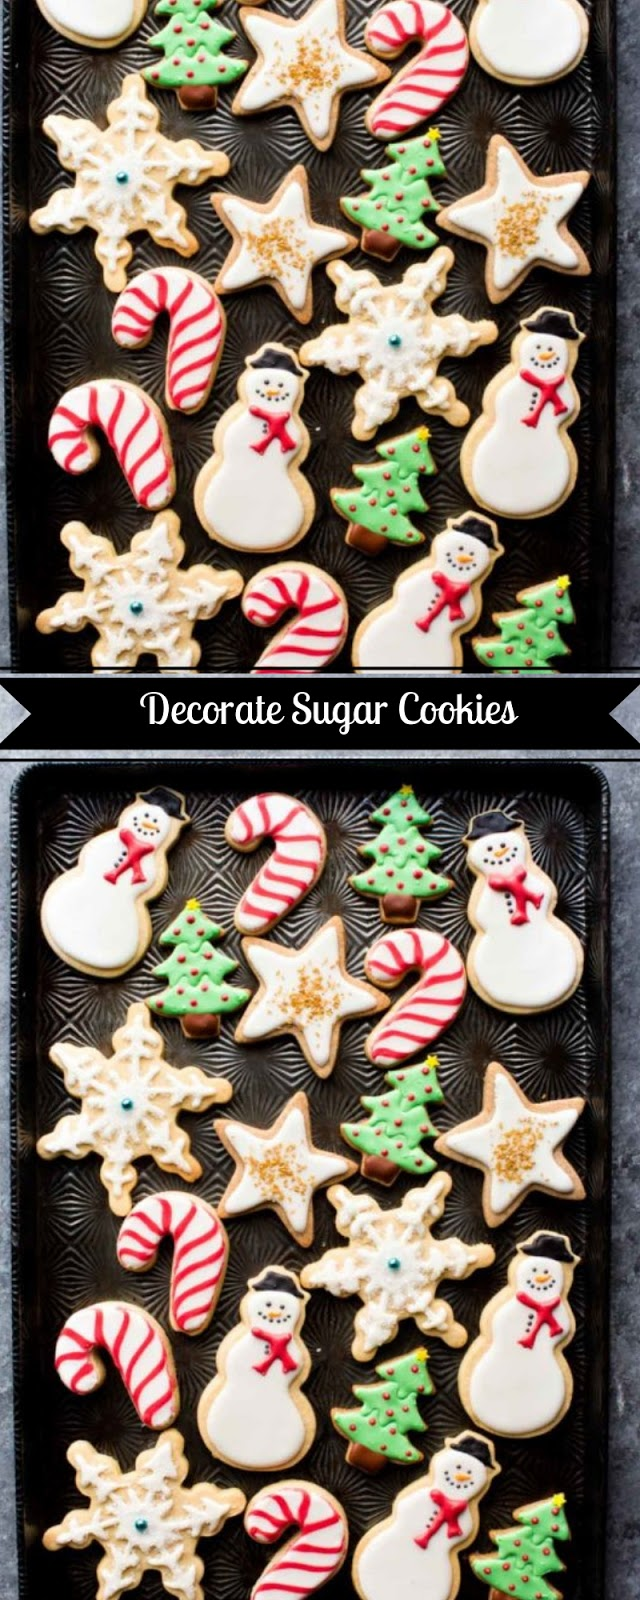 Decorate Sugar Cookies